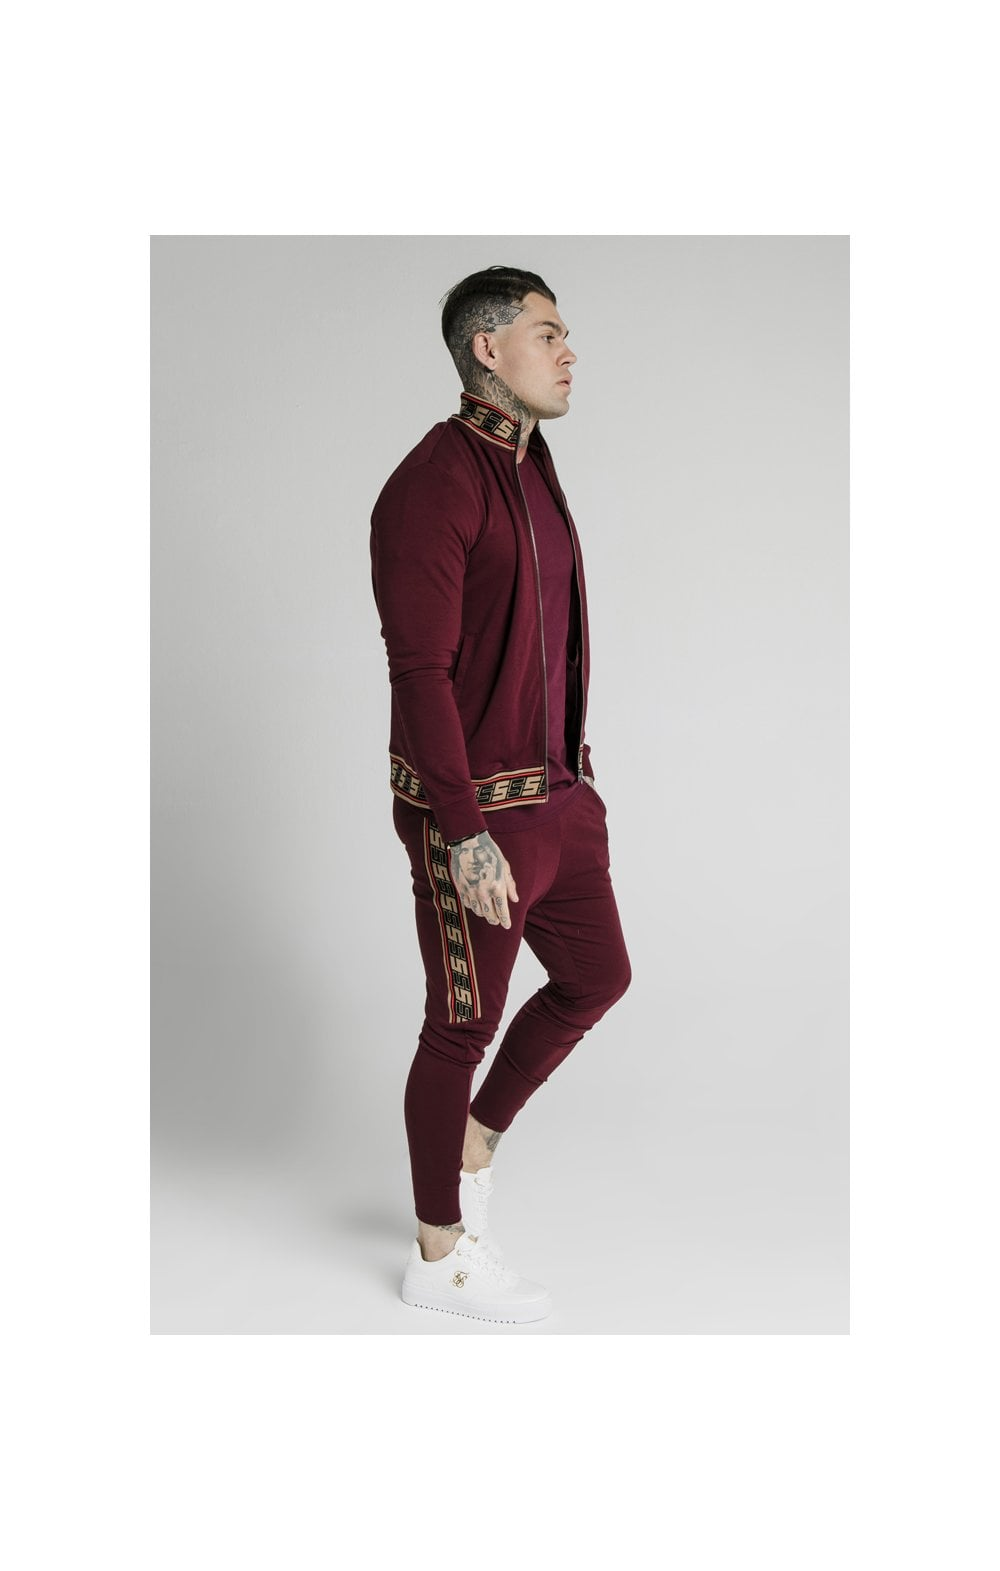 Load image into Gallery viewer, SikSilk Jacquard Retro Zip Through - Burgundy (2)